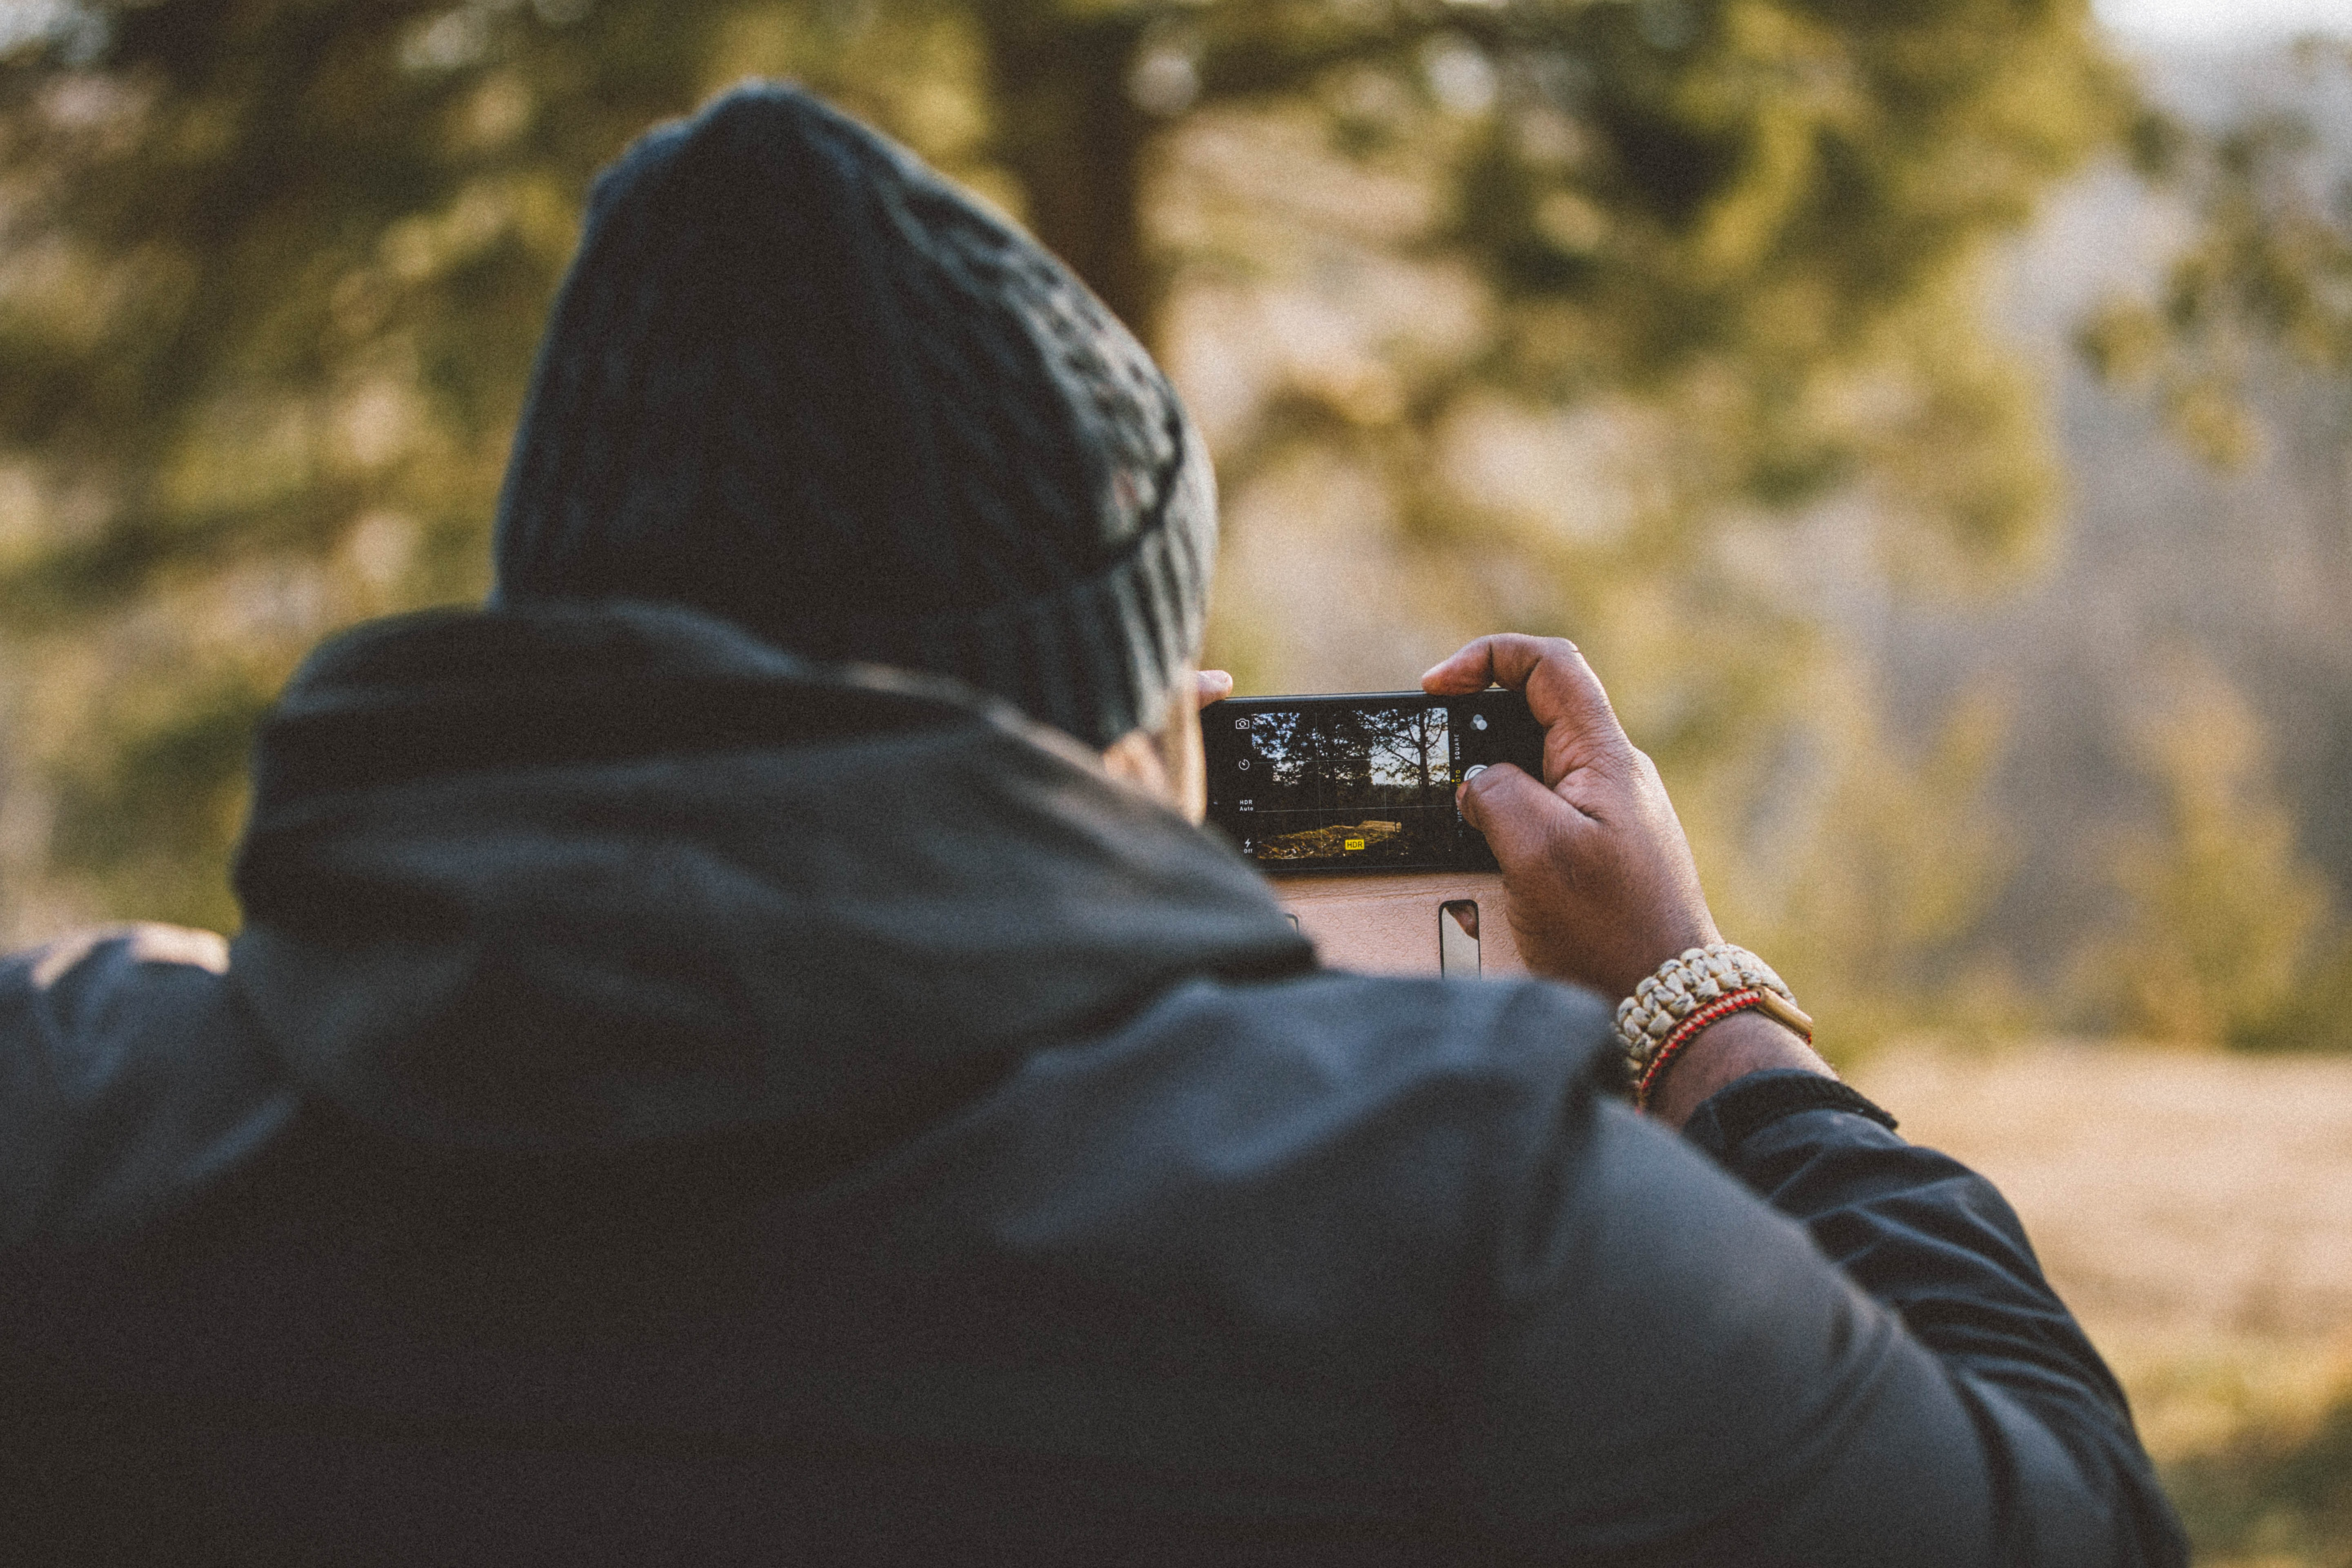 Photographer in winter clothes takes a picture of trees on their smartphone